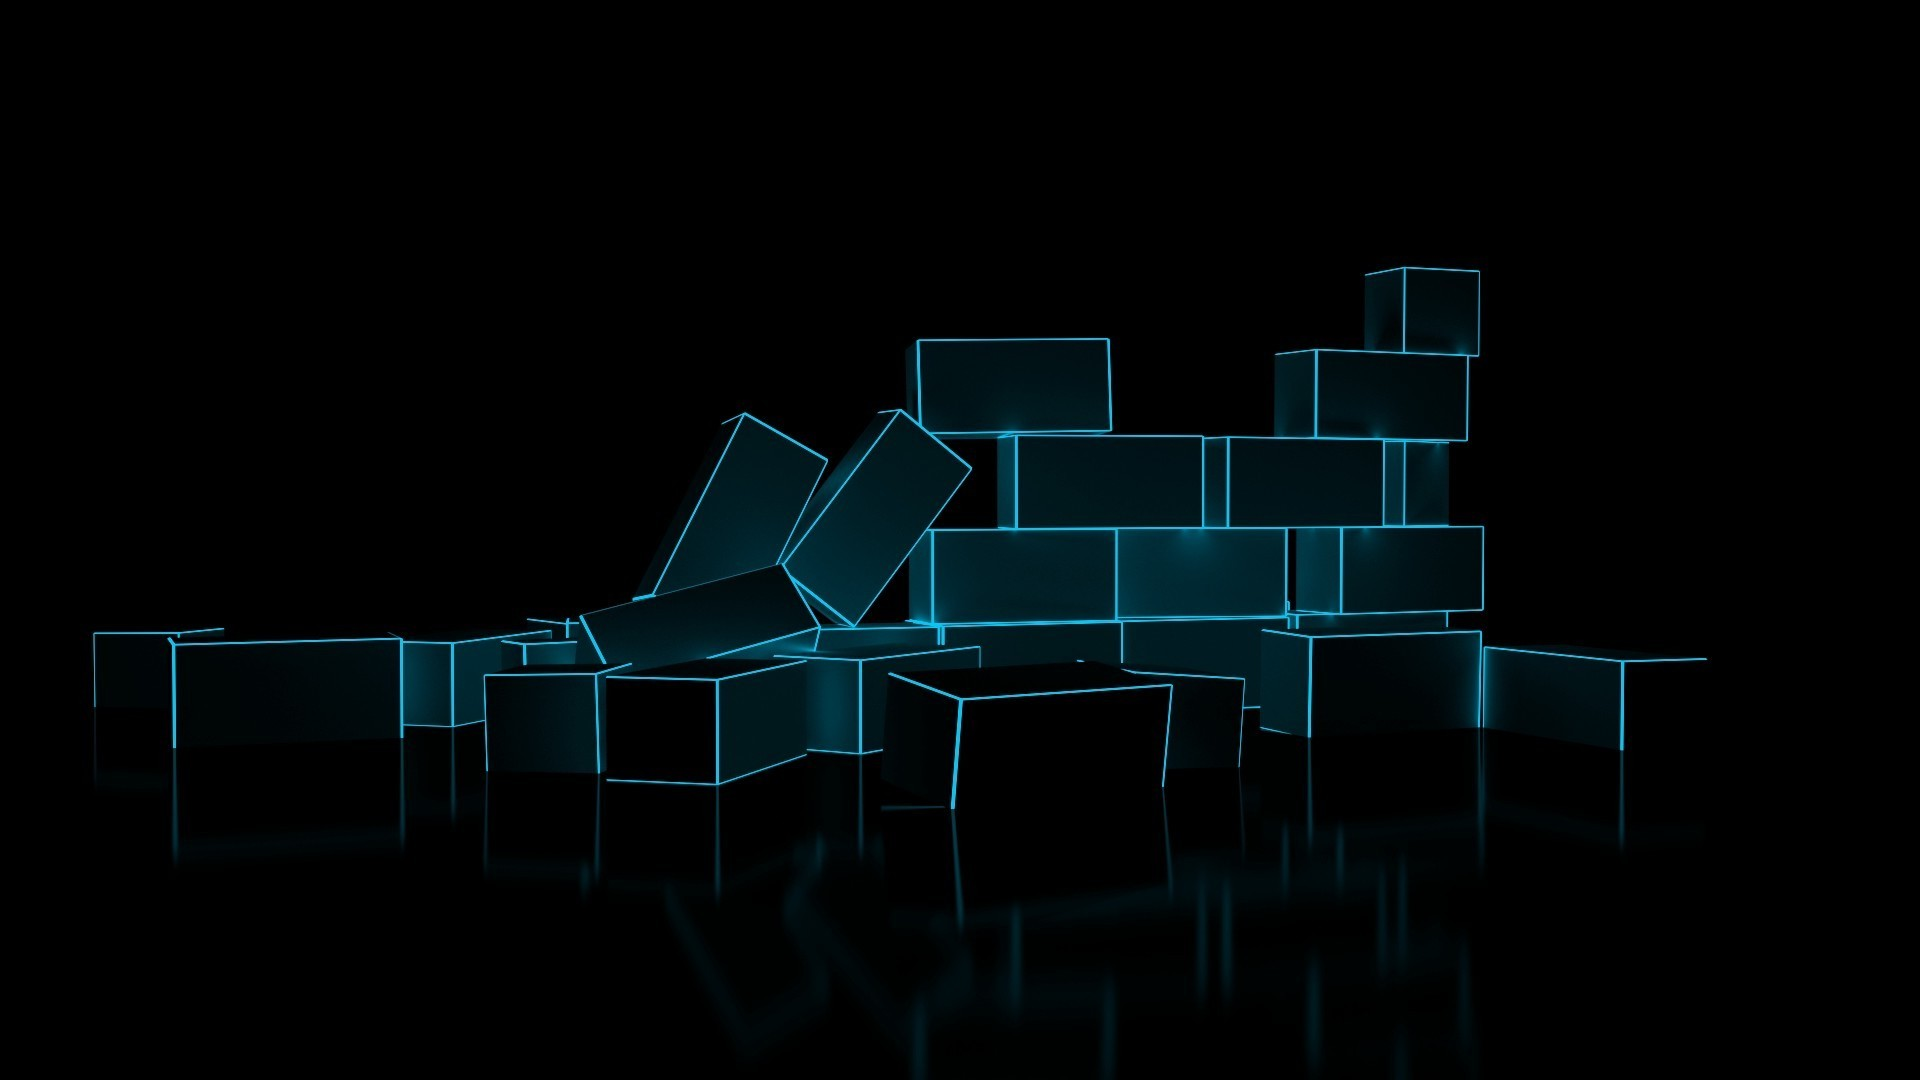 1920x1080 digital Art, Minimalism, 3D, CGI, Bricks, Glowing, Reflection, Black  Background, Neon Light Wallpapers HD / Desktop and Mobile Backgrounds